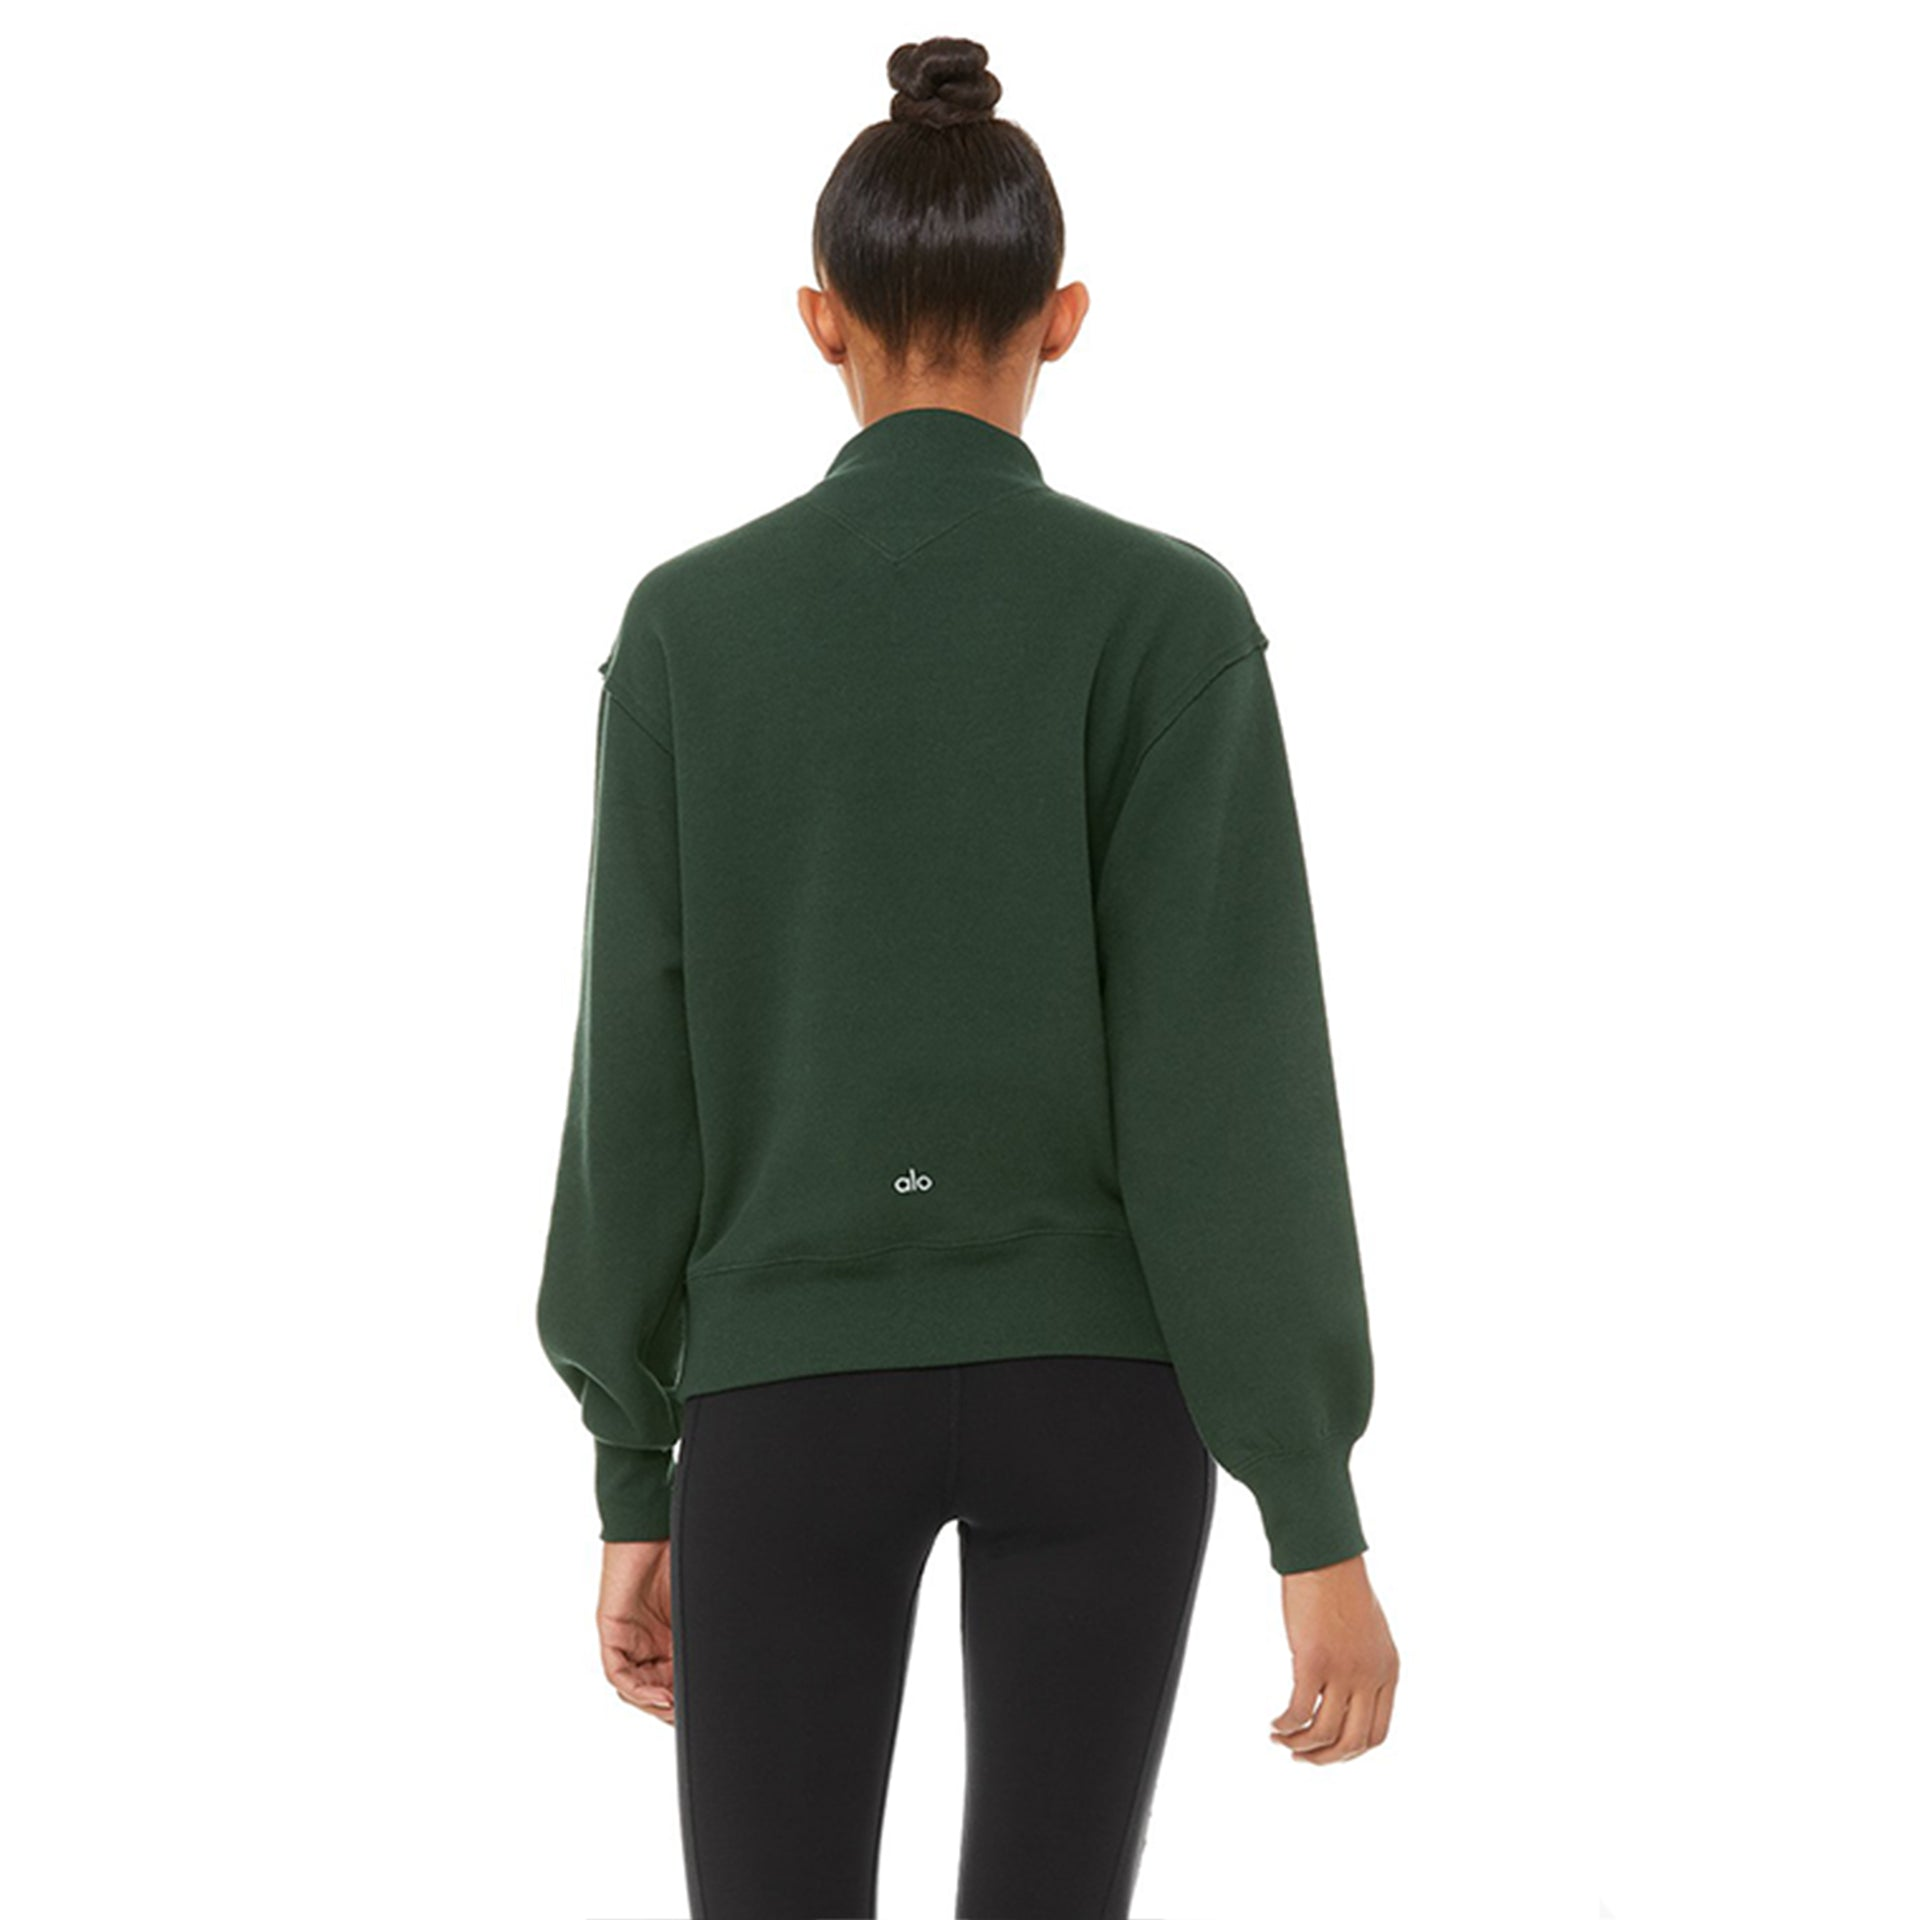 Alo Yoga Freestyle Sweatshirt in Forest